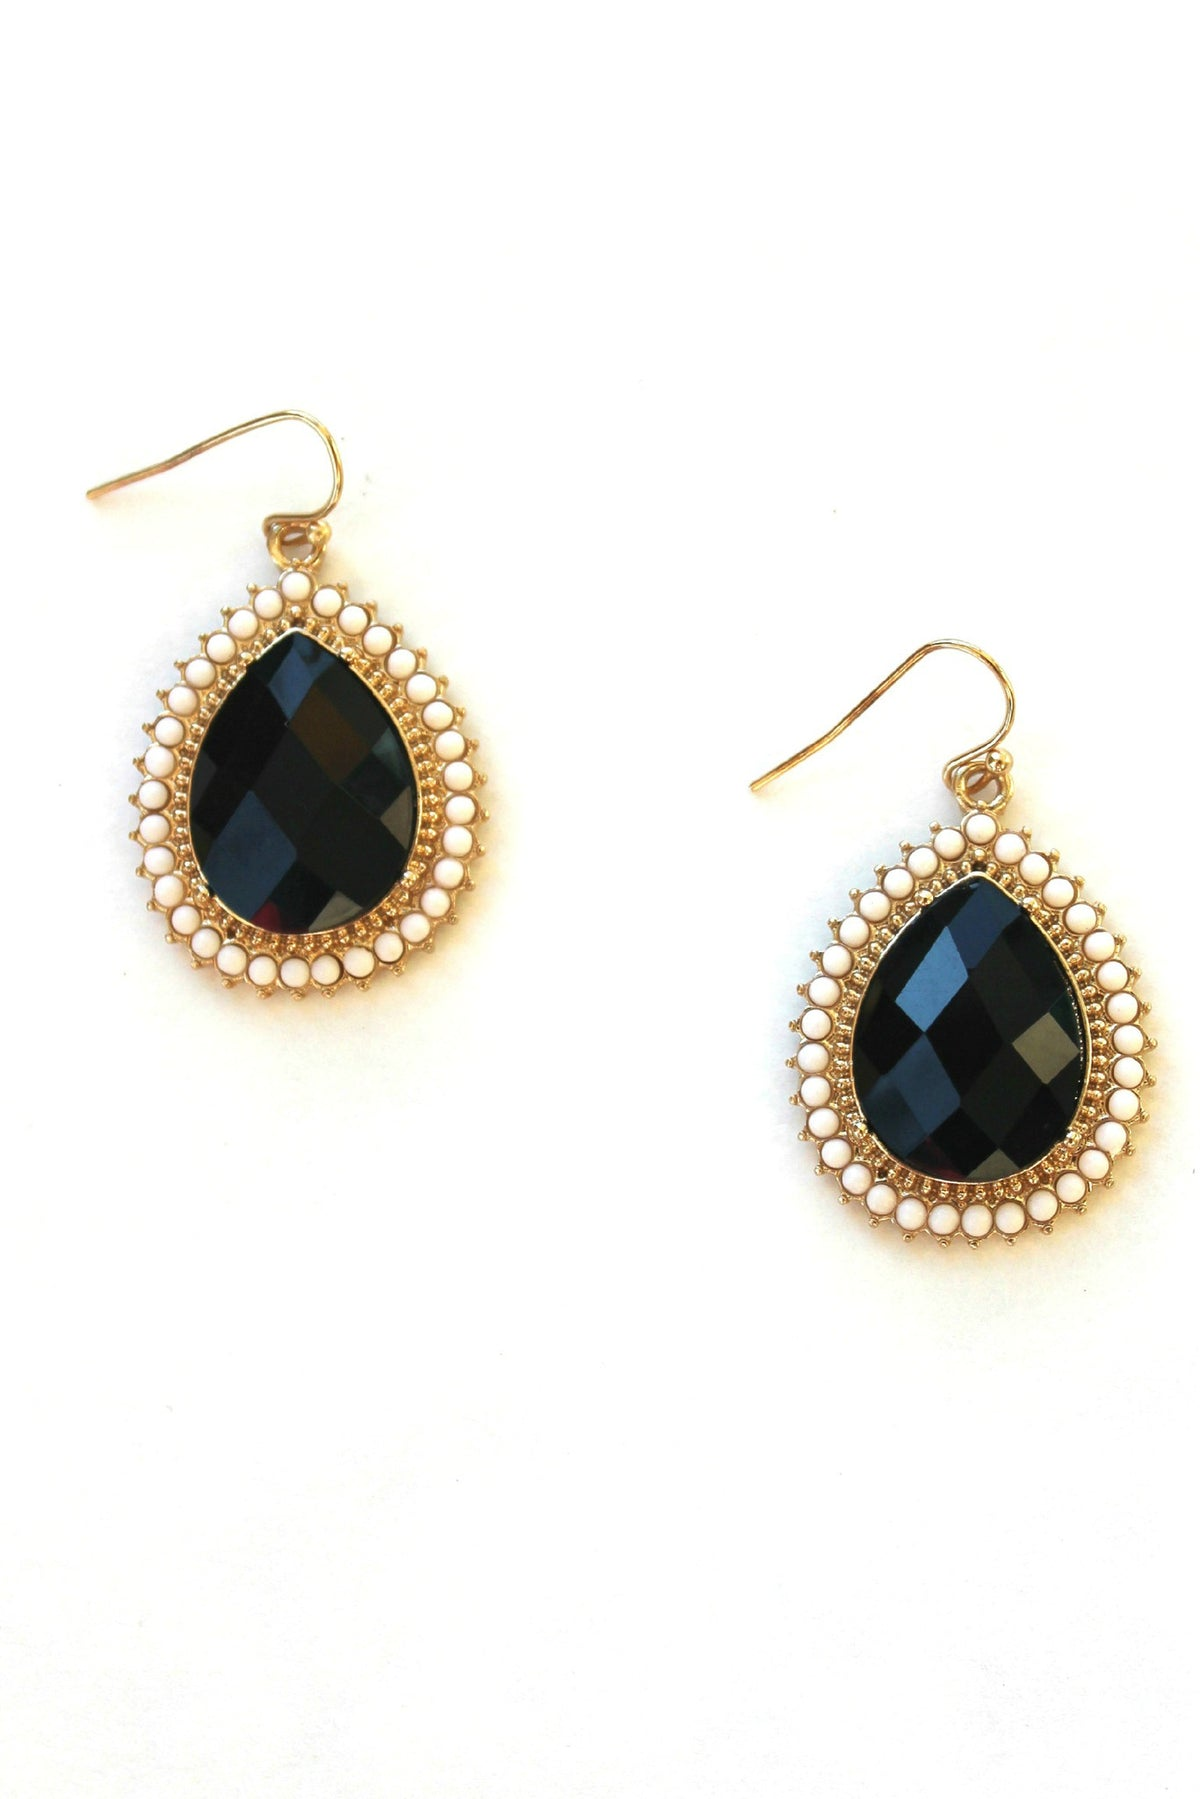 Teardrop with Bead Trim Earrings, Black